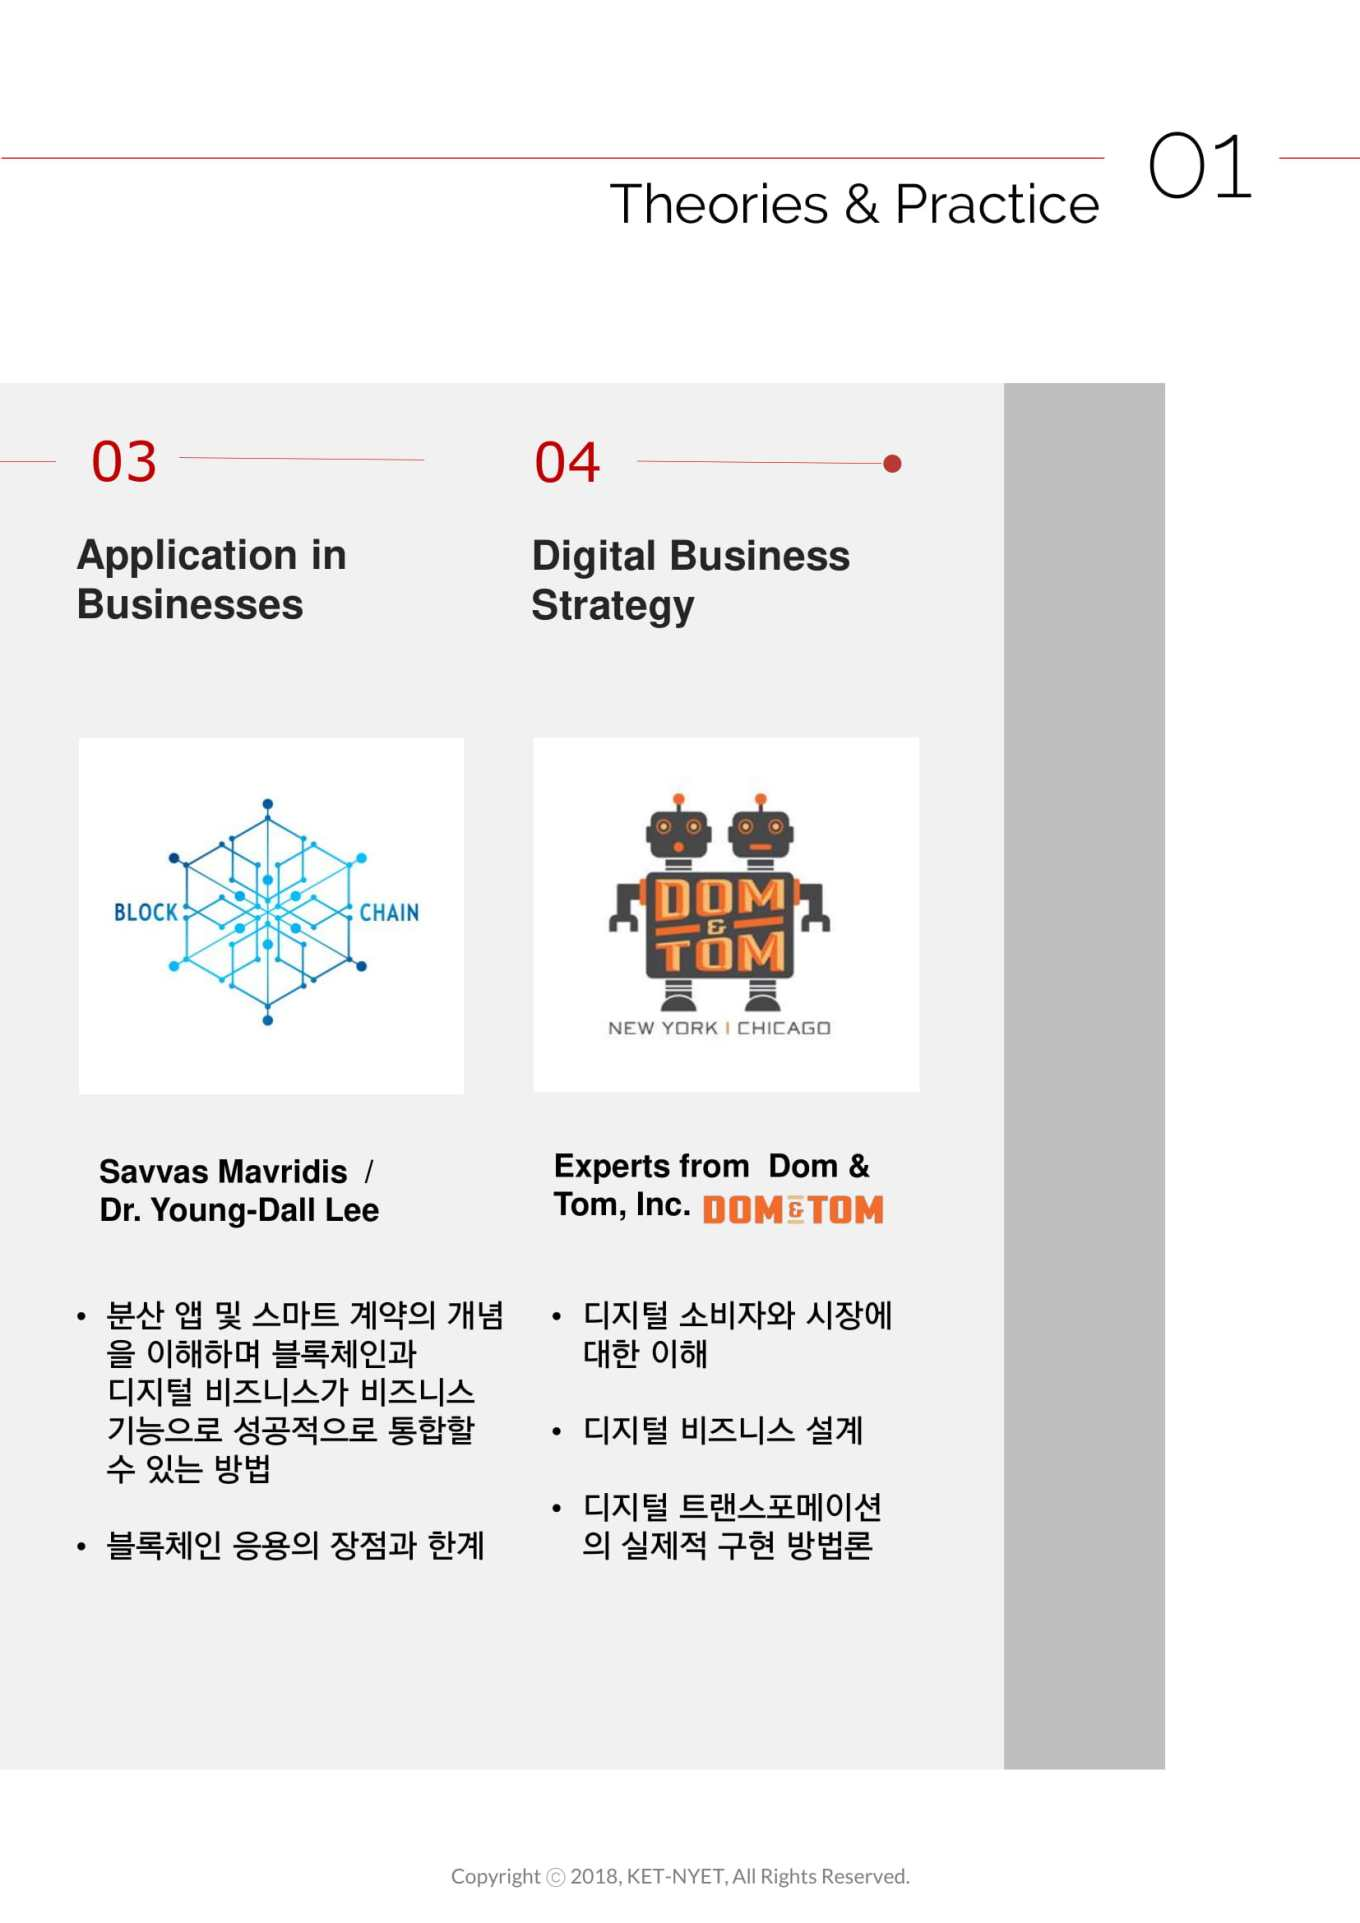 2-2_BC and Digital Business_NYC _korean.pptx-09